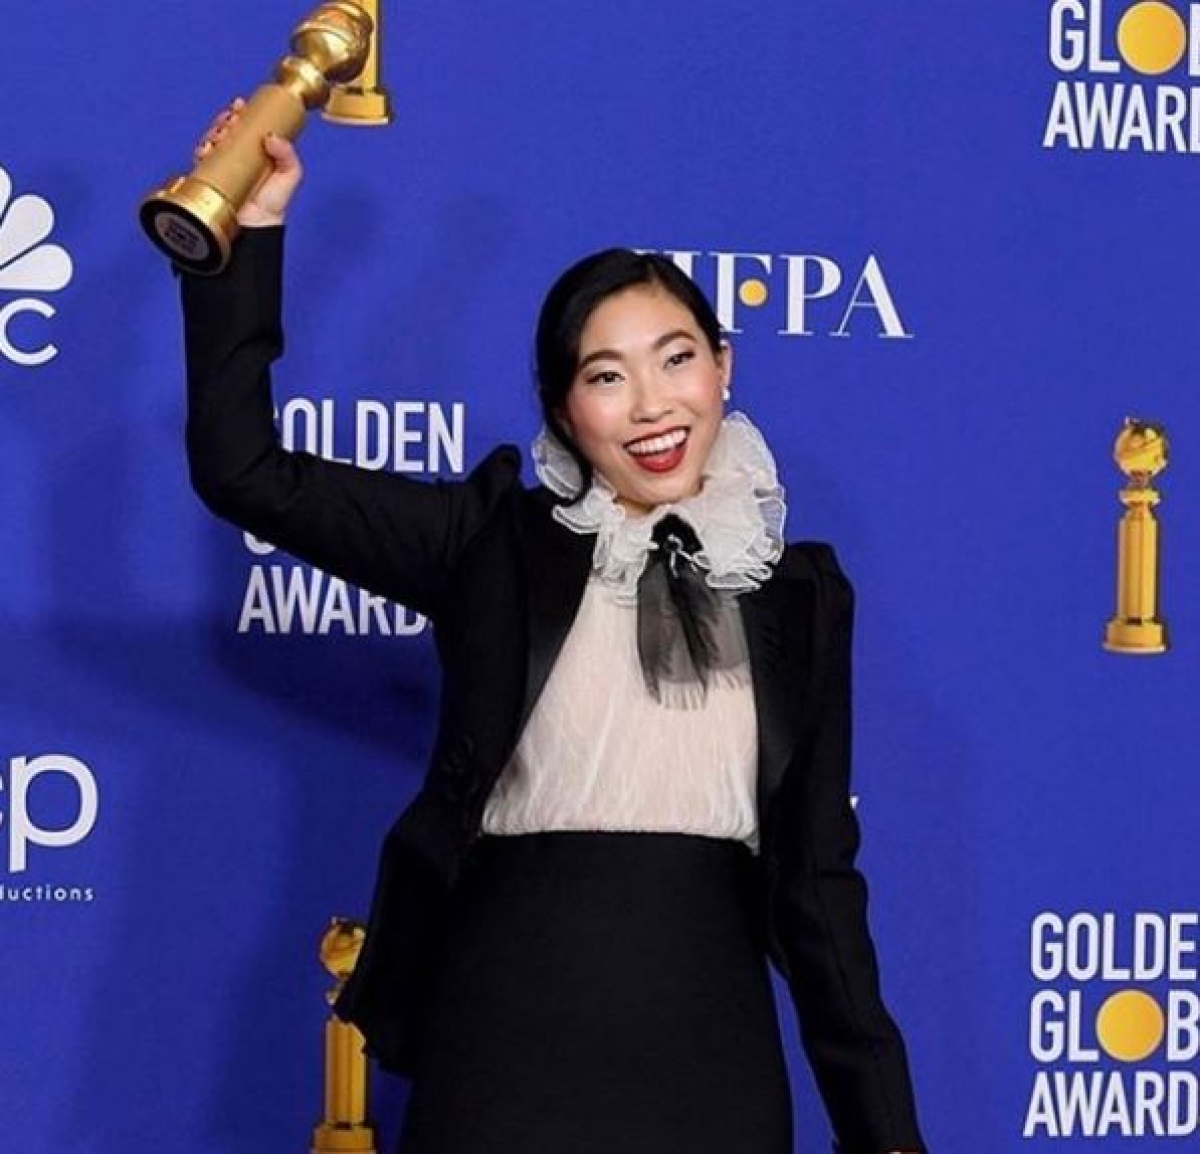 'We can't ignore movies helmed by women': Awkwafina on her film being snubbed from Oscar nominations